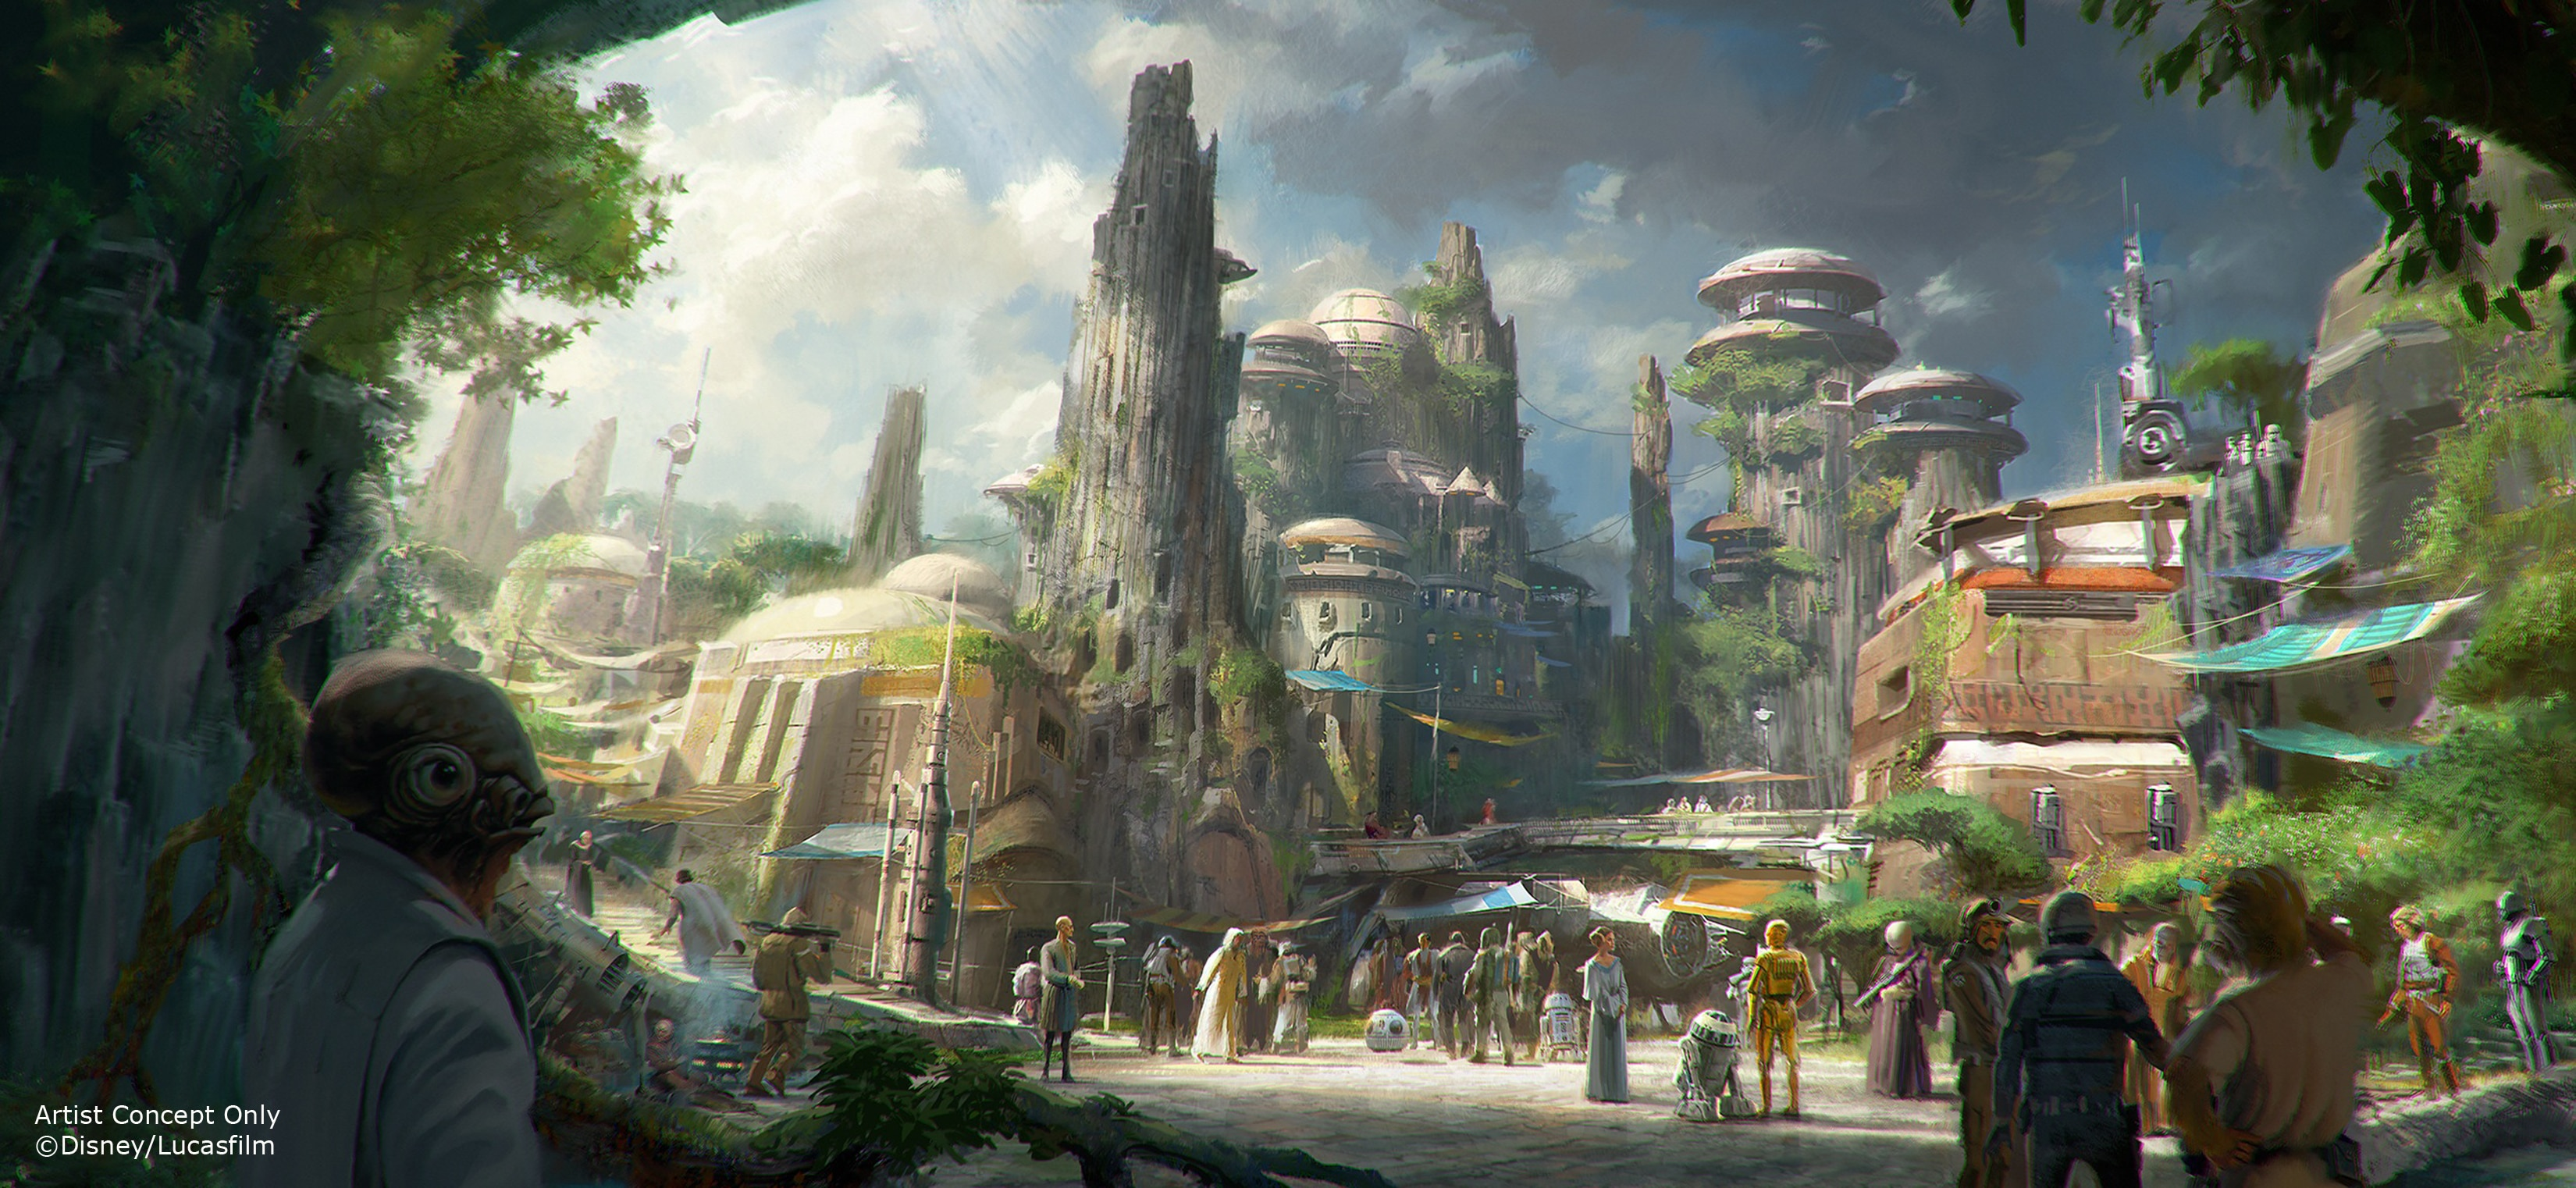 Galaxy's Edge right outside of the Disney star wars hotel